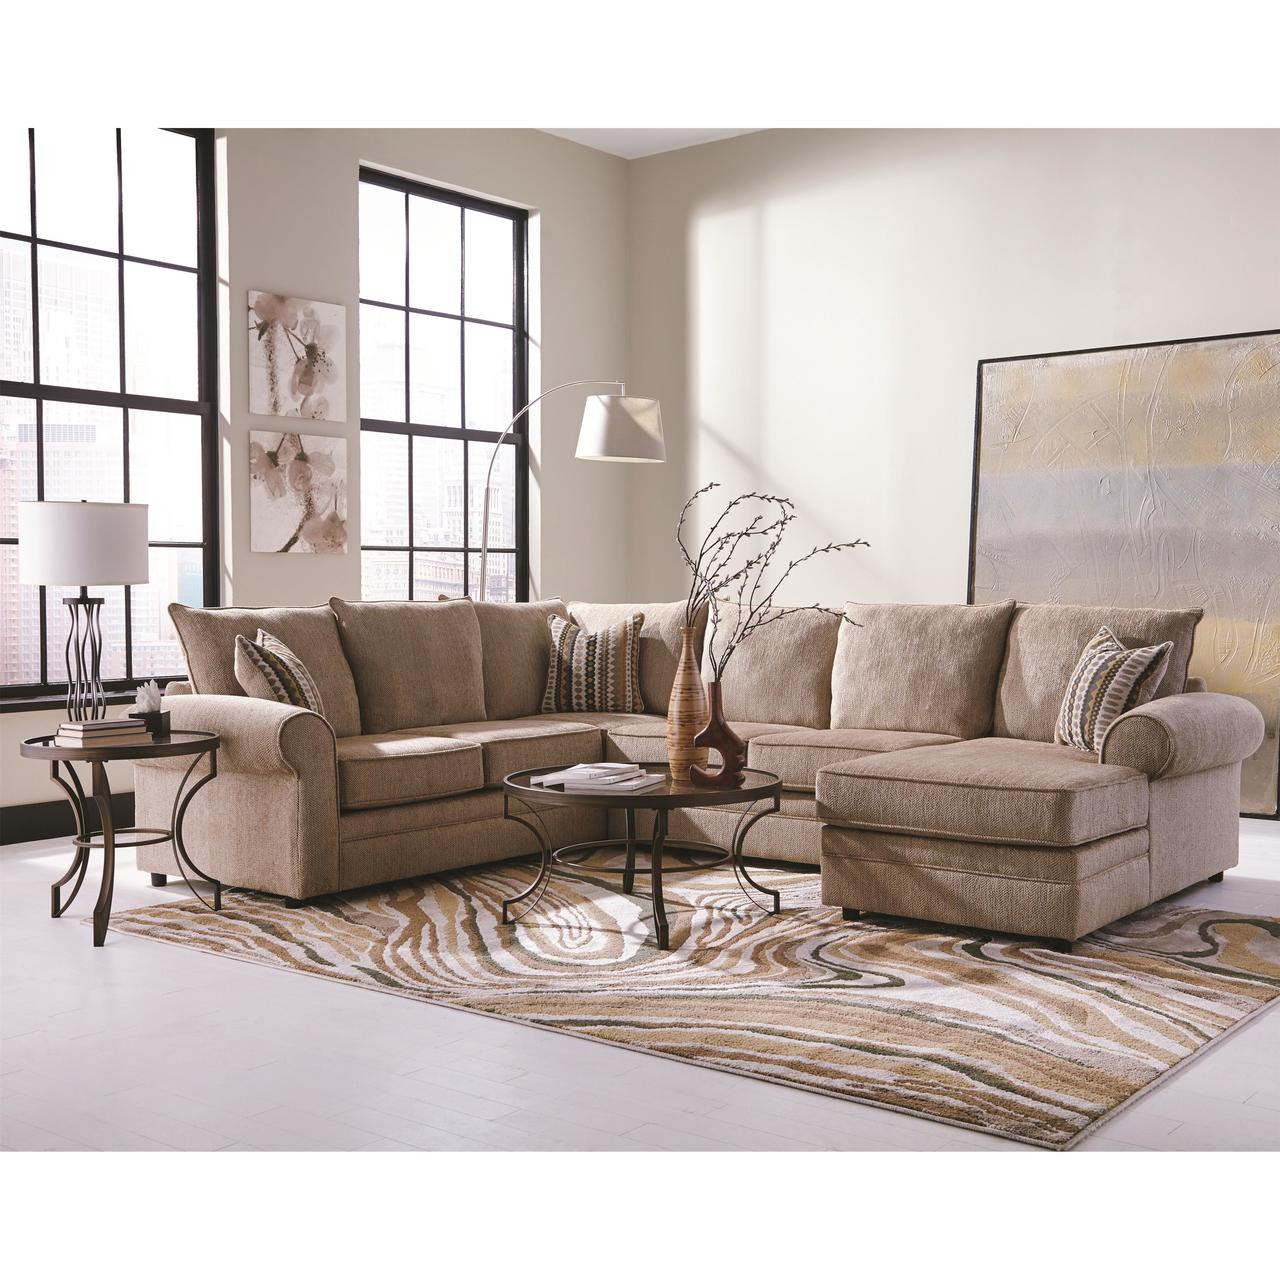 Fairhaven Cream Colored U Shaped Sectional With Chaise